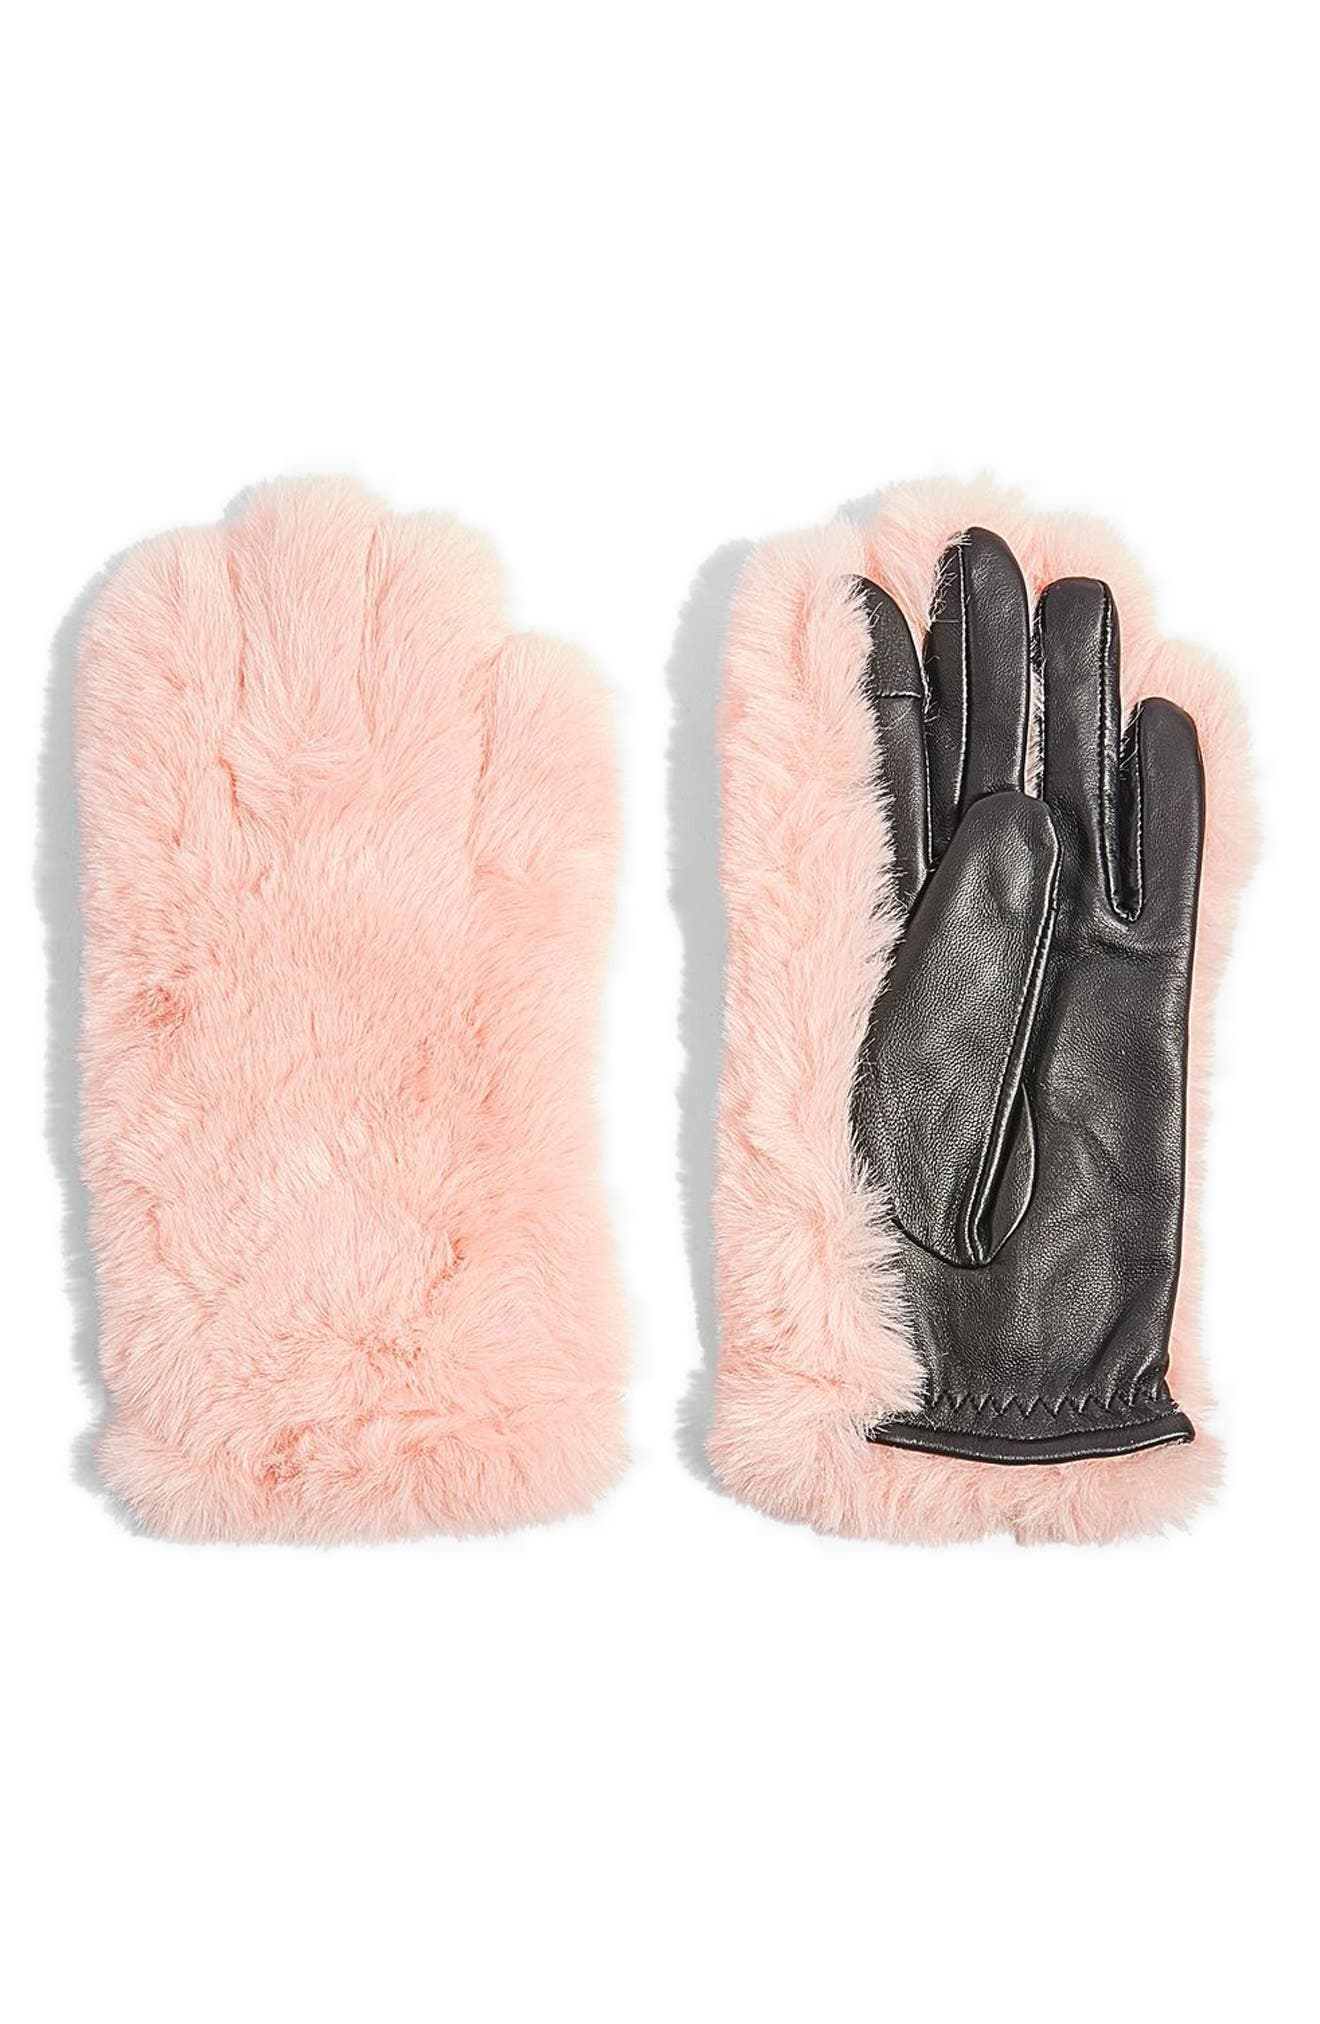 Faux Fur & Leather Gloves,                             Main thumbnail 1, color,                             Pink